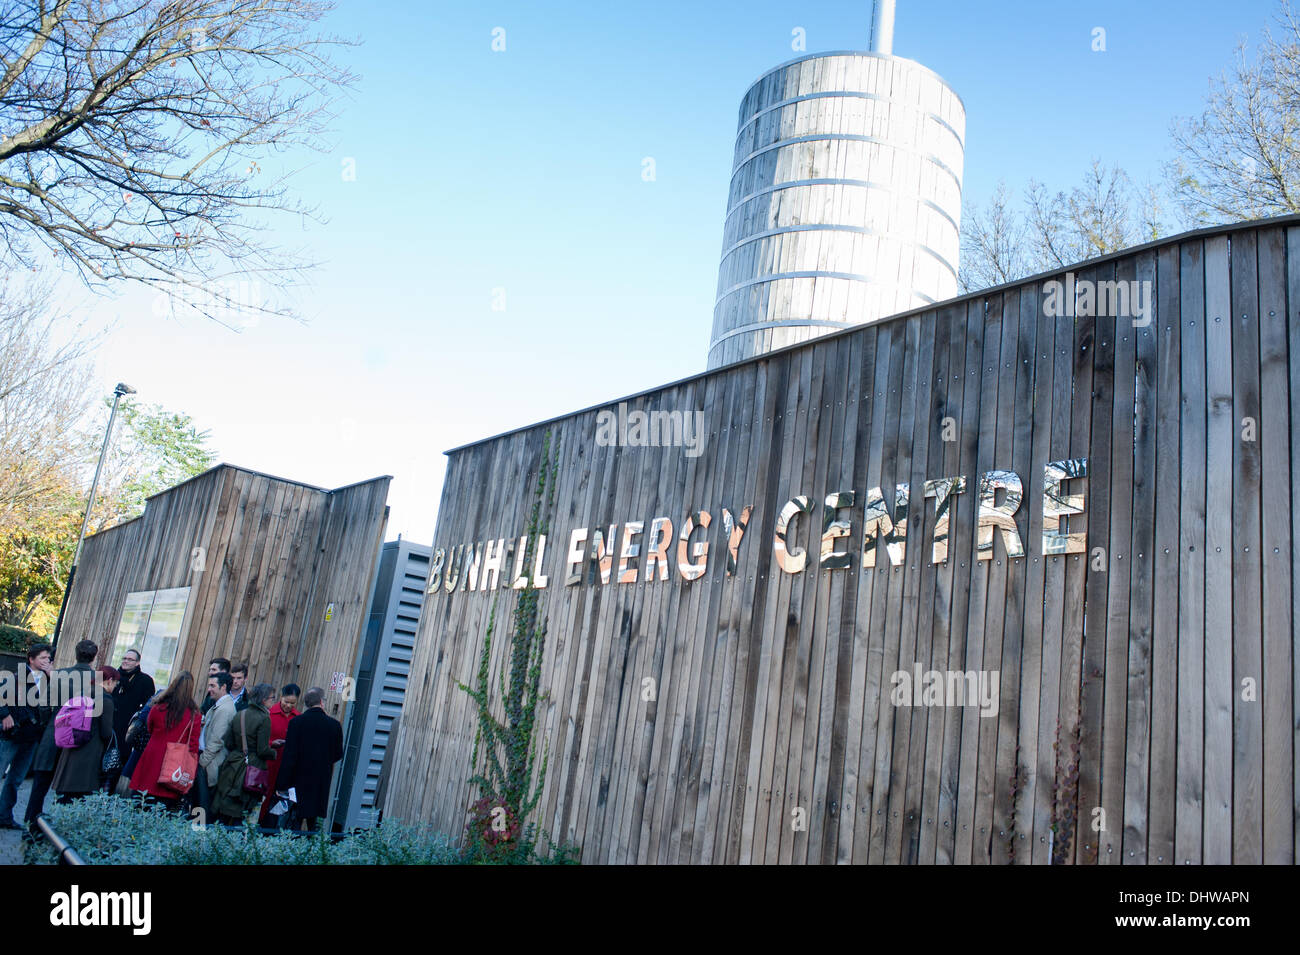 London, UK - 15 November 2013: Bunhill Energy Centre in Islington, an energy network scheme which supplies more than 700 local homes with cheaper, greener heating using waste heat from the Tube. Credit:  Piero Cruciatti/Alamy Live News - Stock Image